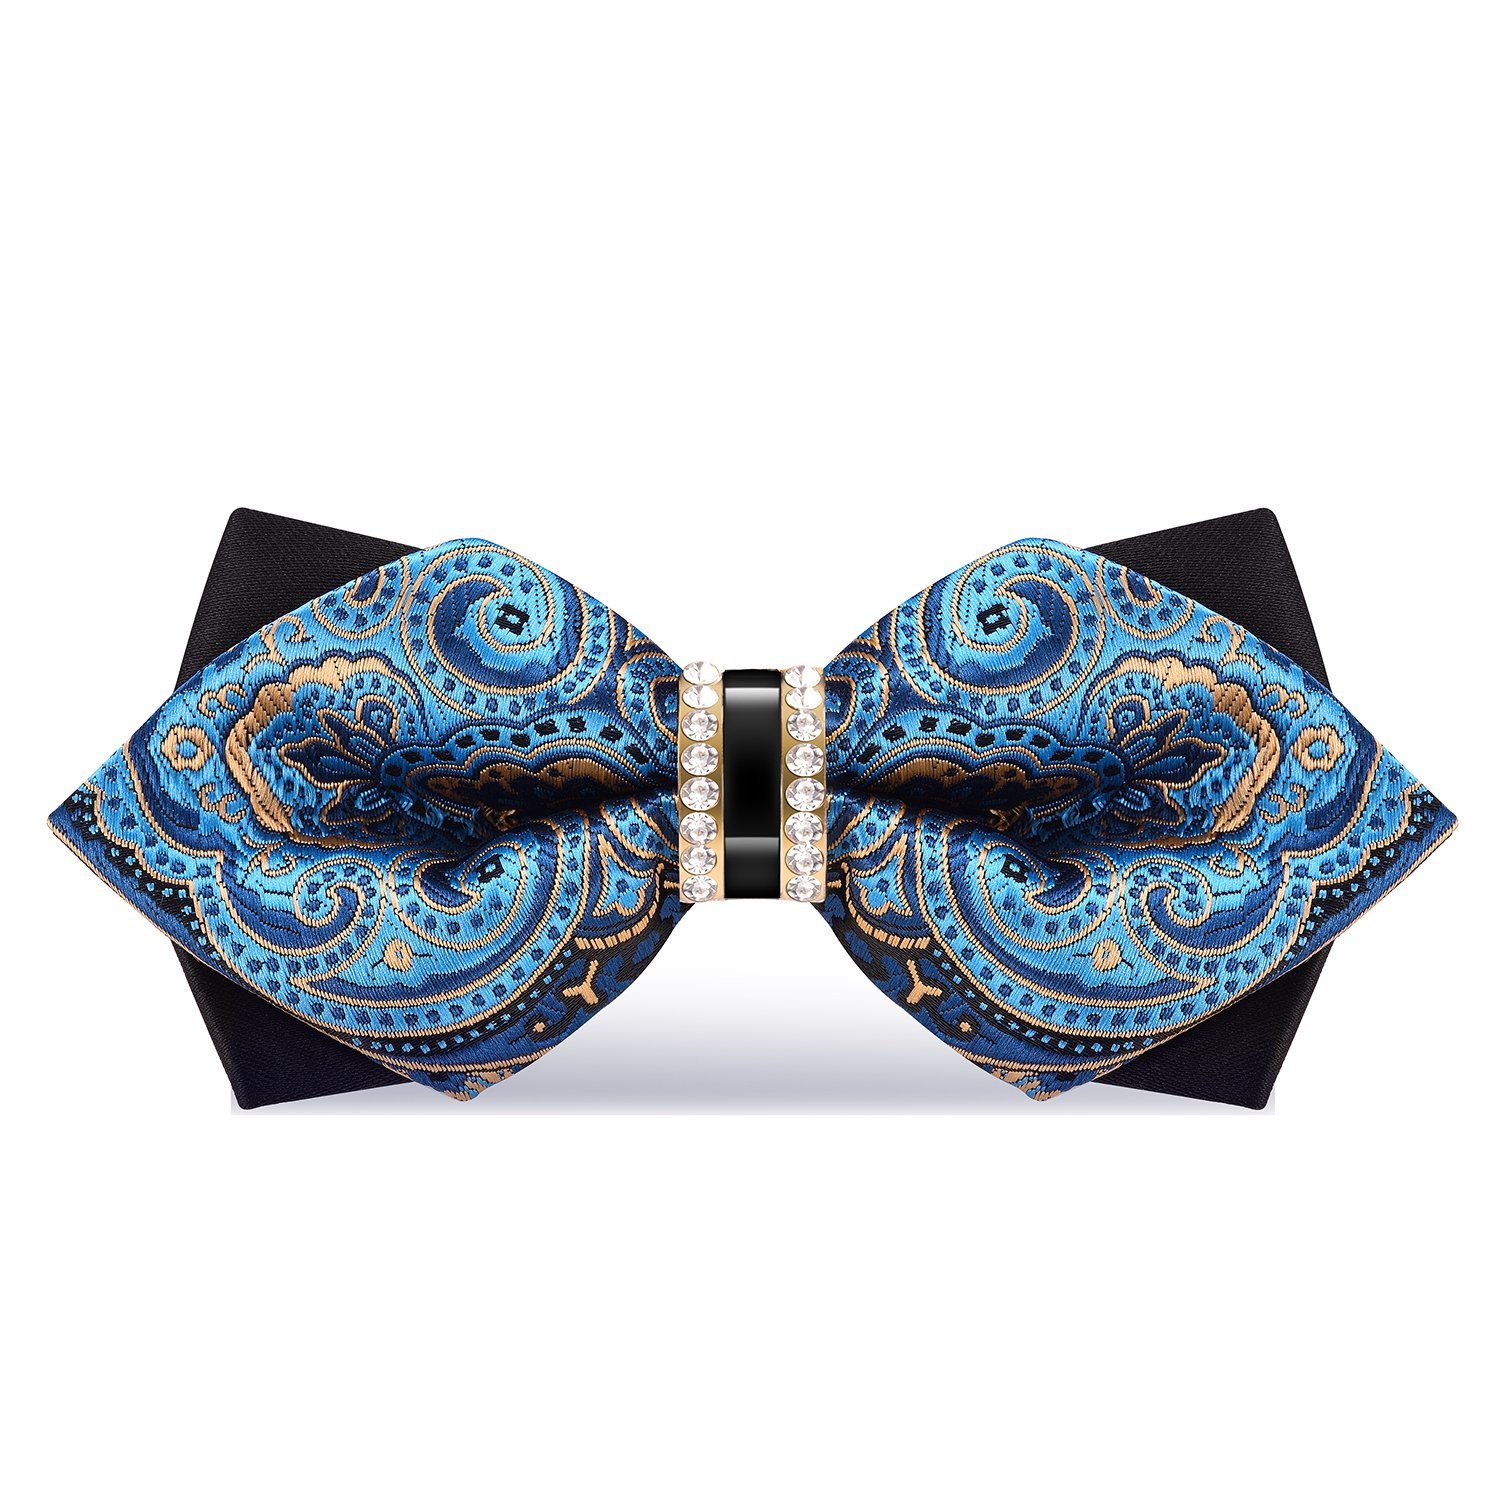 WEBO Bow Tie Rhinestone embellishment Adjustable Bowties(Blue paisley)